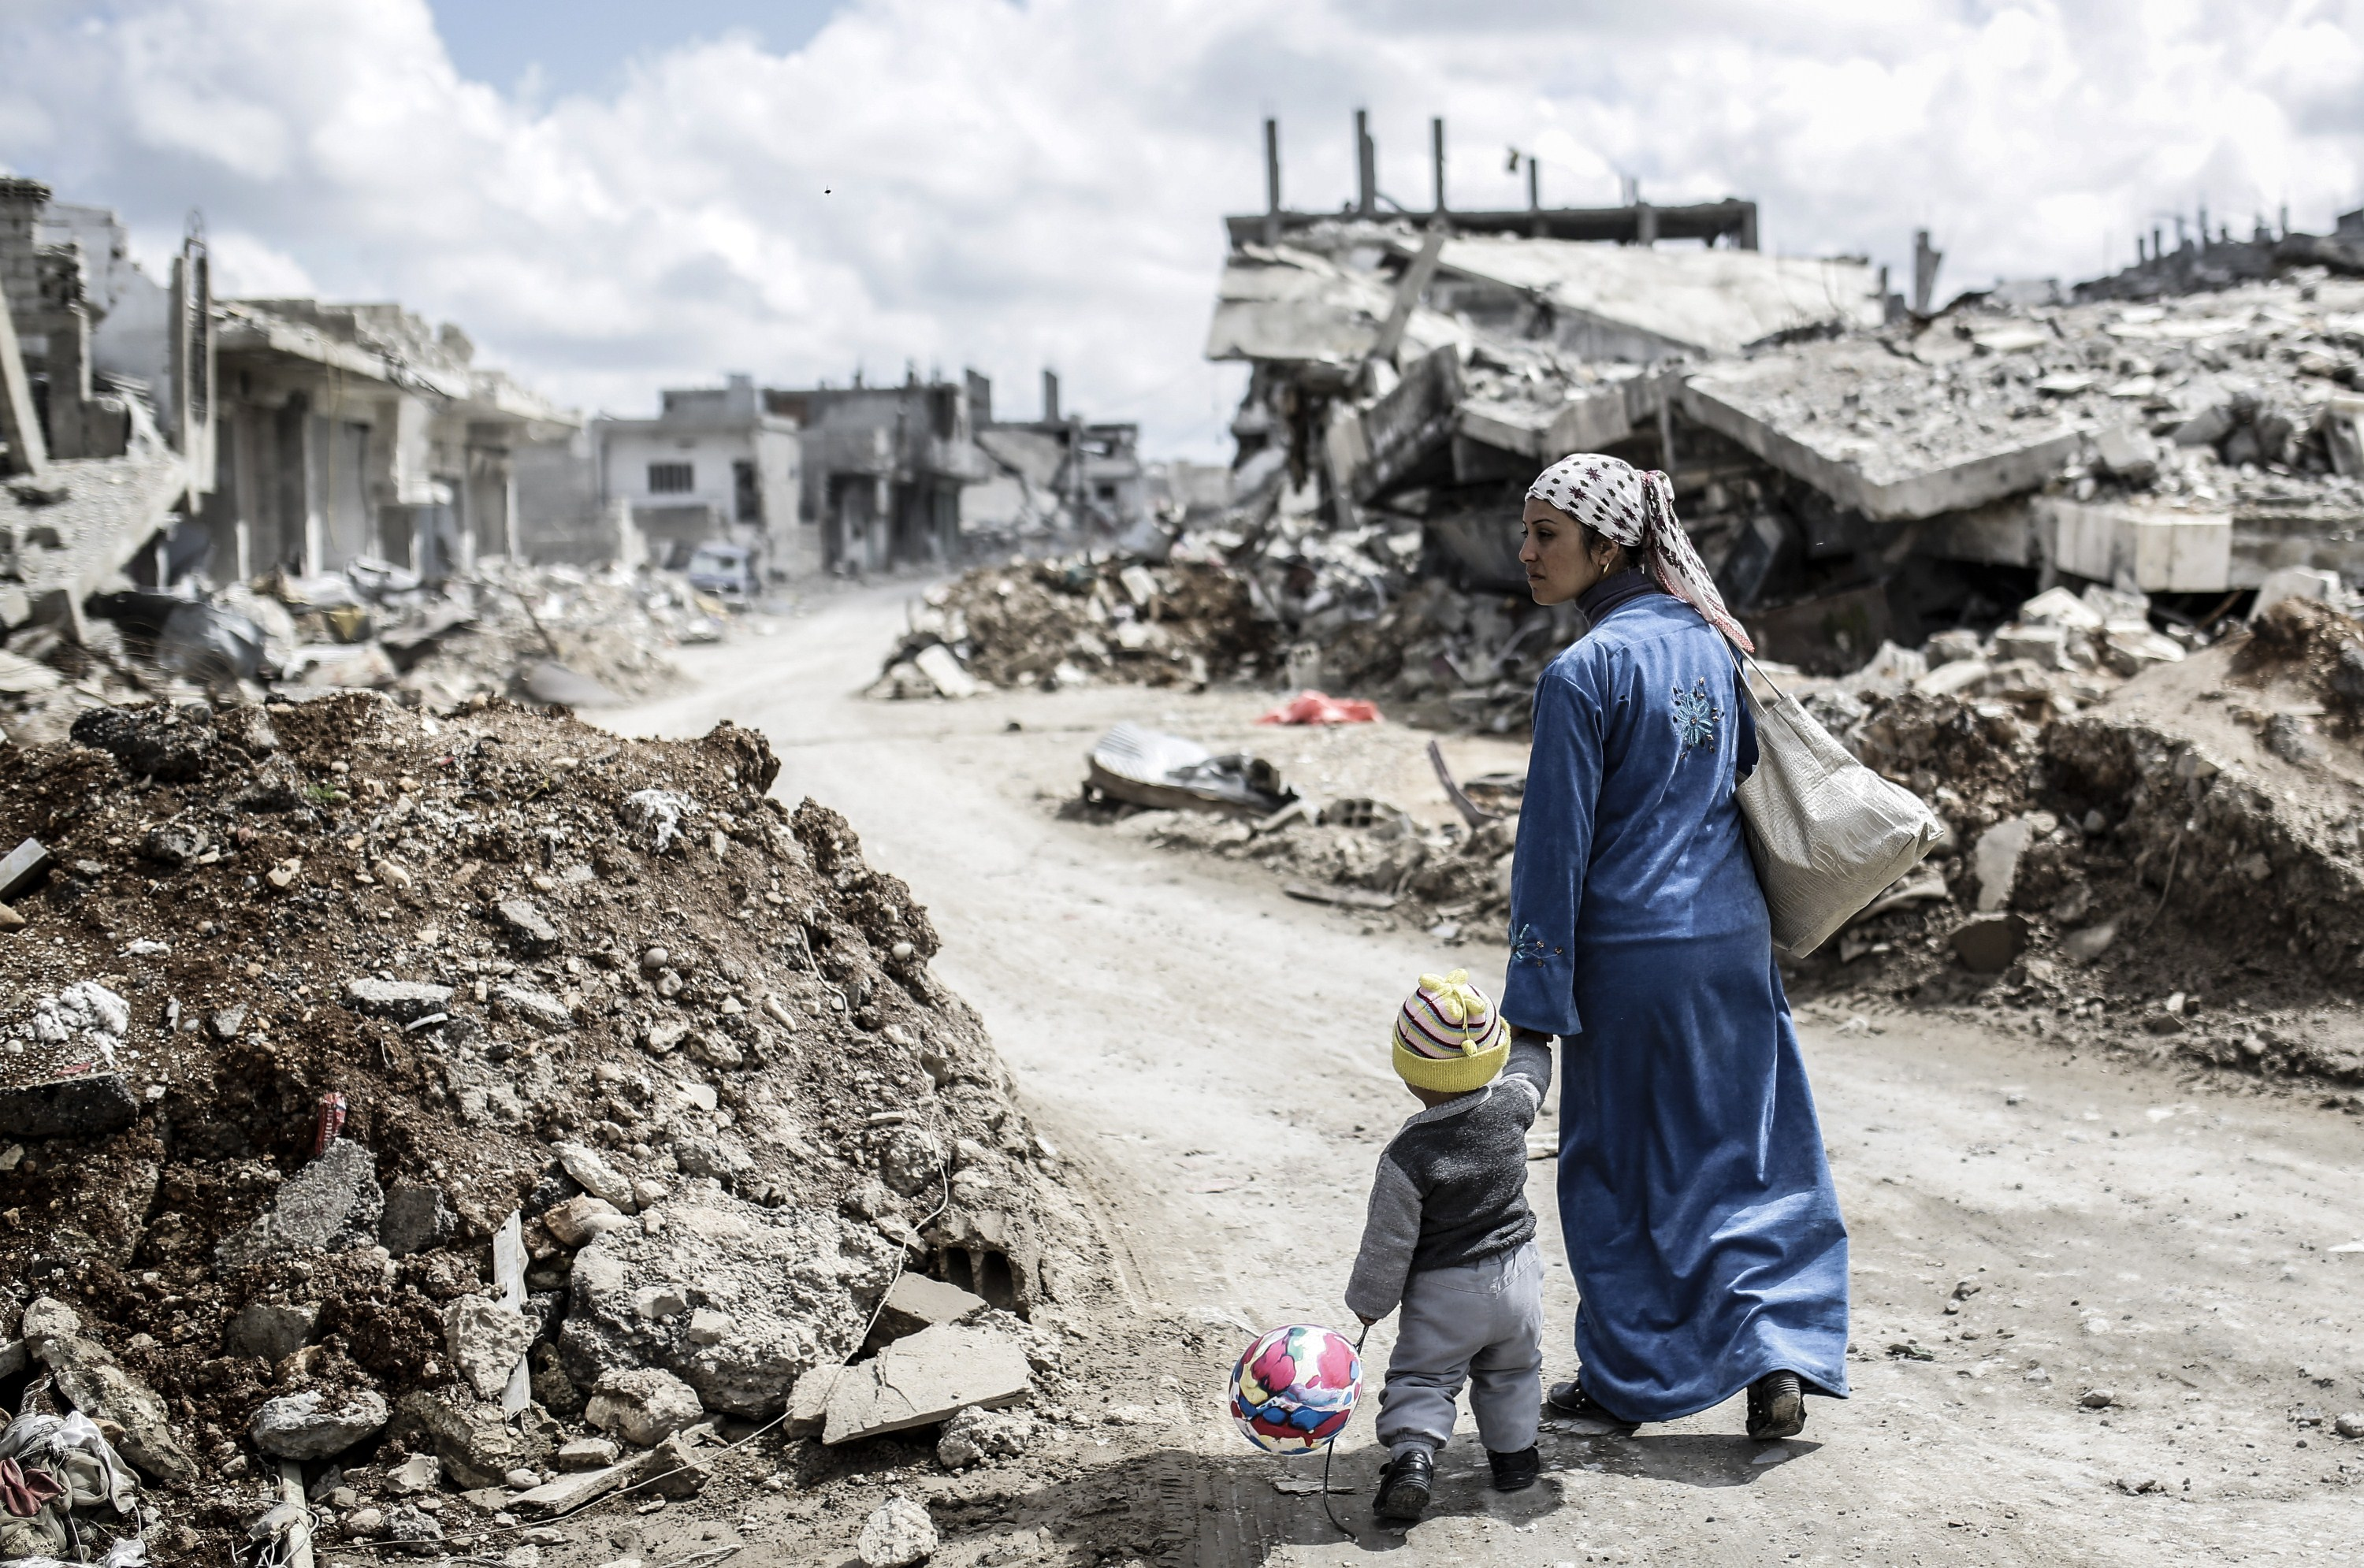 A Kurdish Syrian woman walks with her child past the ruins of the town of Kobane, also known as Ain al-Arab, on March 25, 2015.